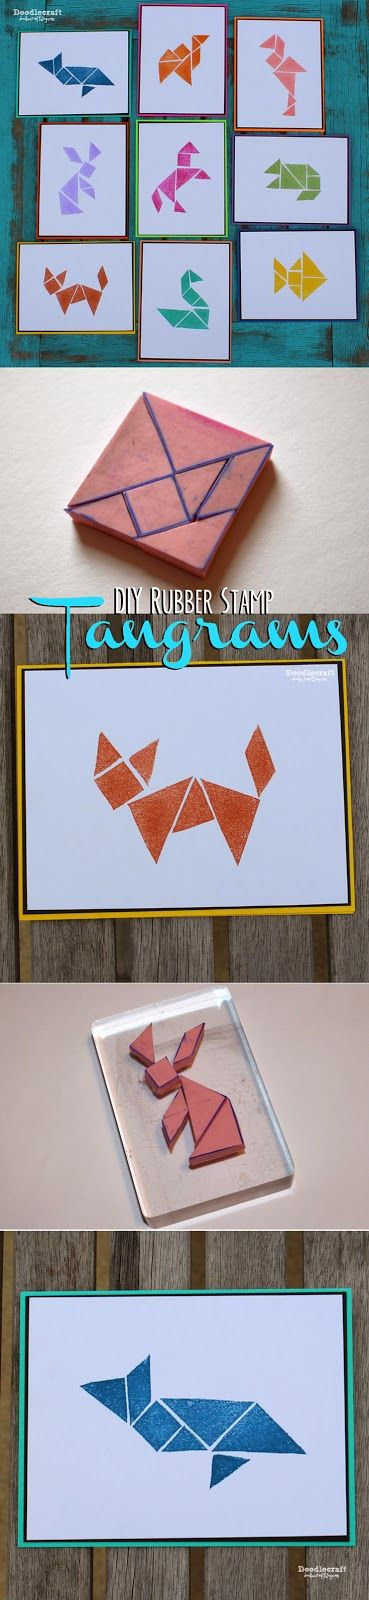 DIY create your own tanagram stamps. Great gift idea.